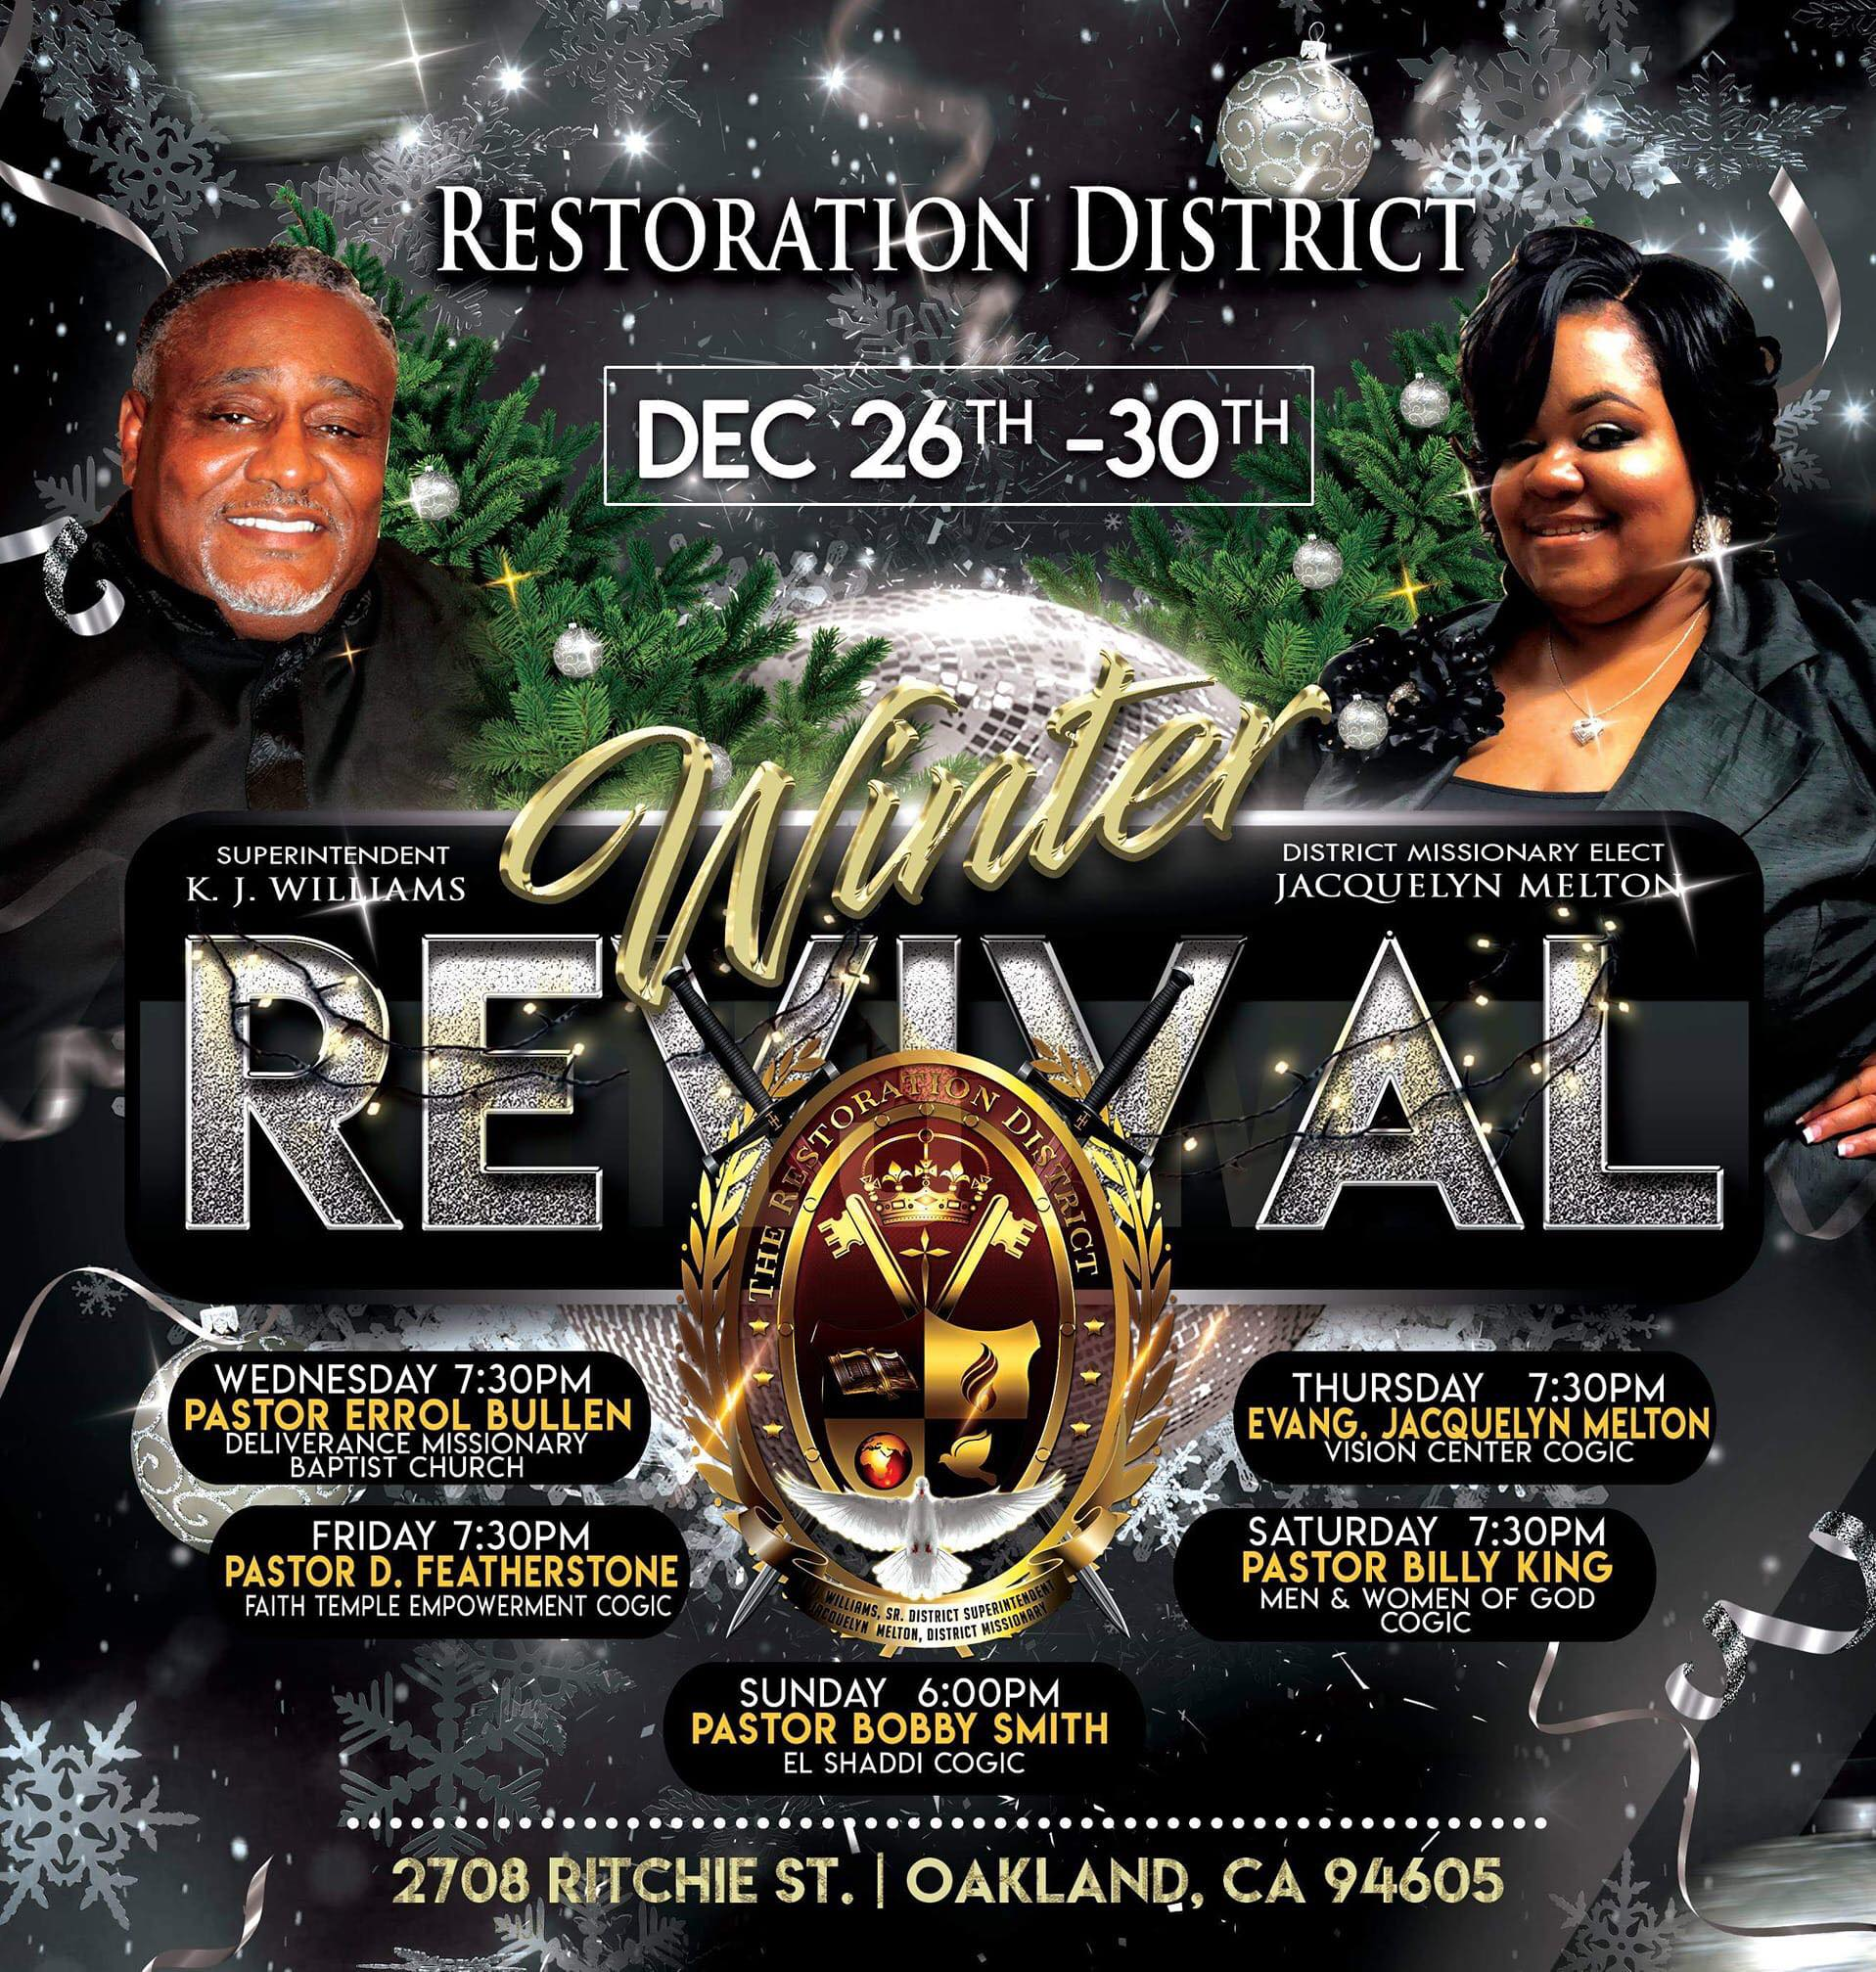 Restoration District Nye Winter Revival 2018